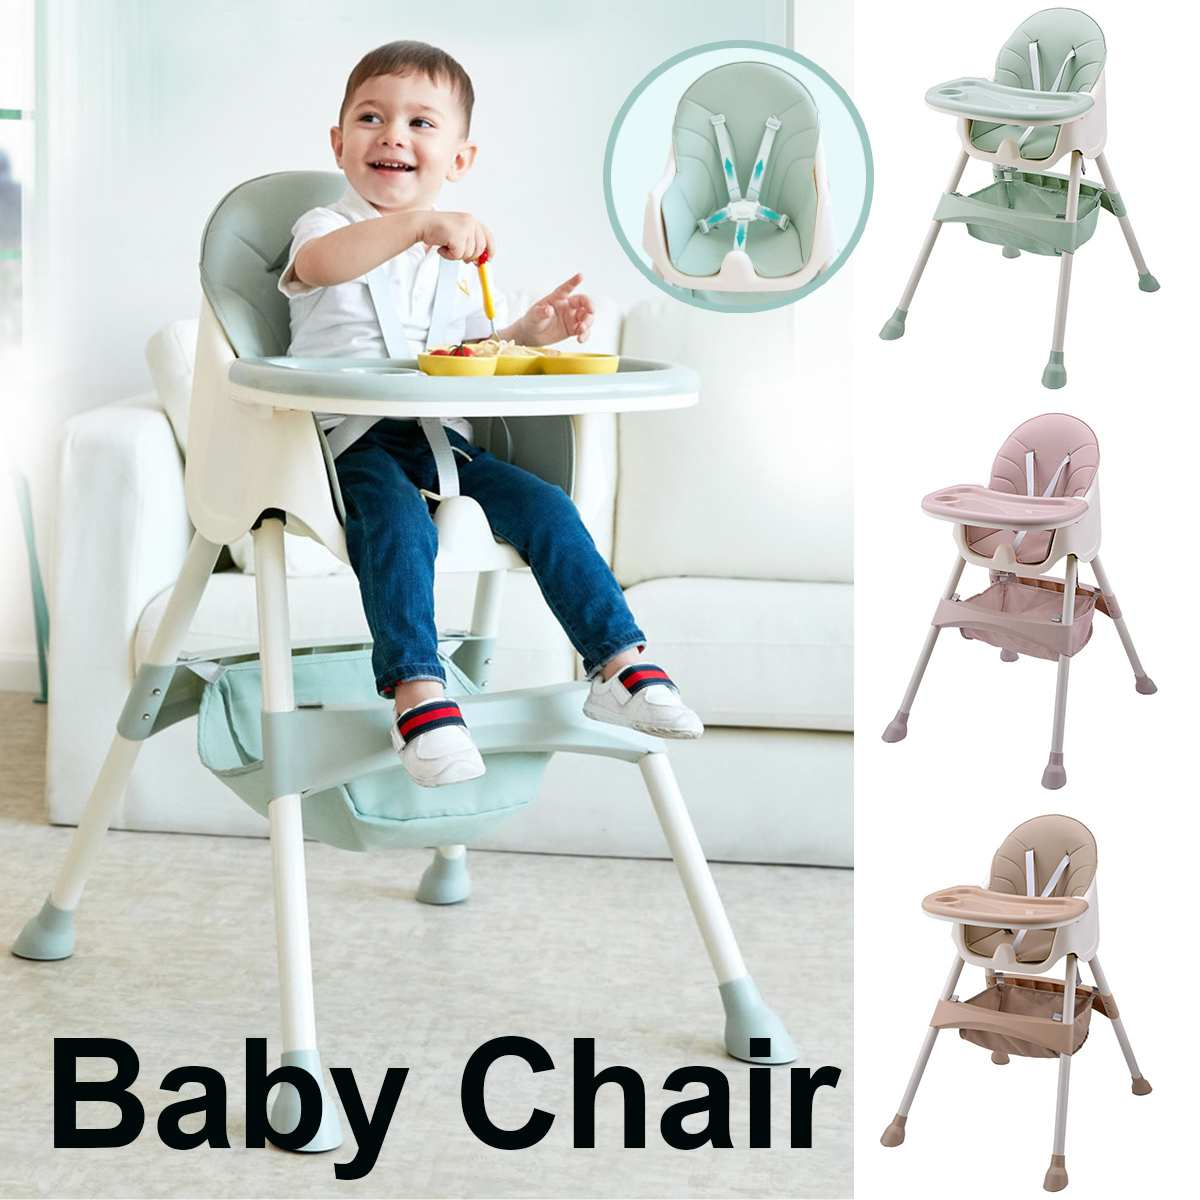 Adjustable Baby Kids Highchair Feeding Dining Chair Double Tables Macaron Multifunction Height Adjust Portable with Storage Bag